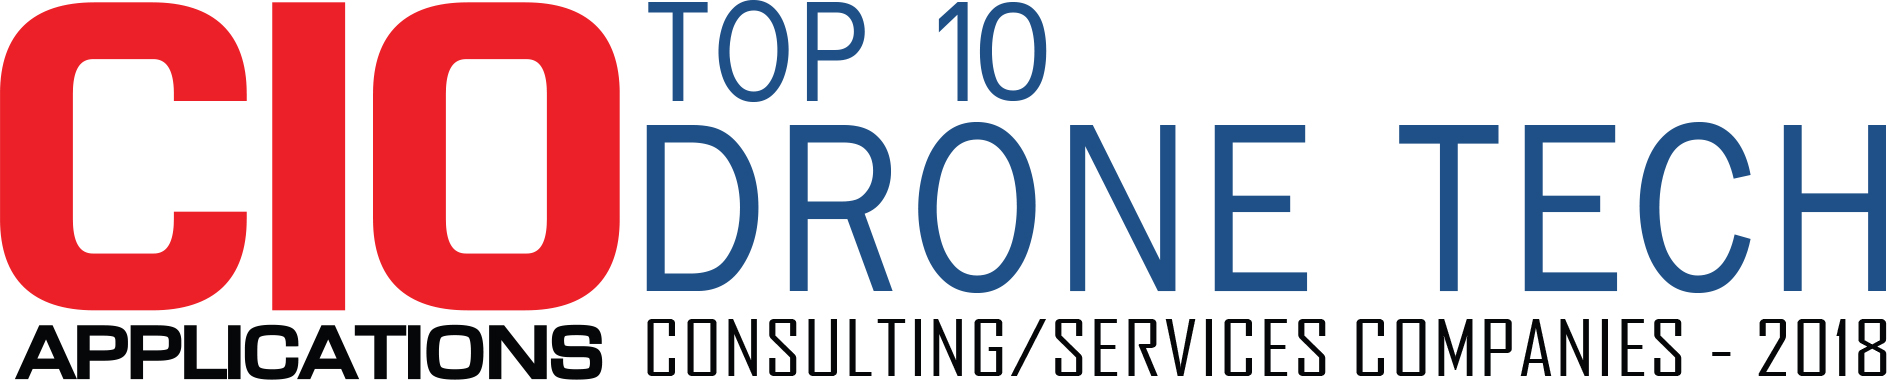 Top 10 Companies Providing Drone Tech Consulting/Services  - 2018